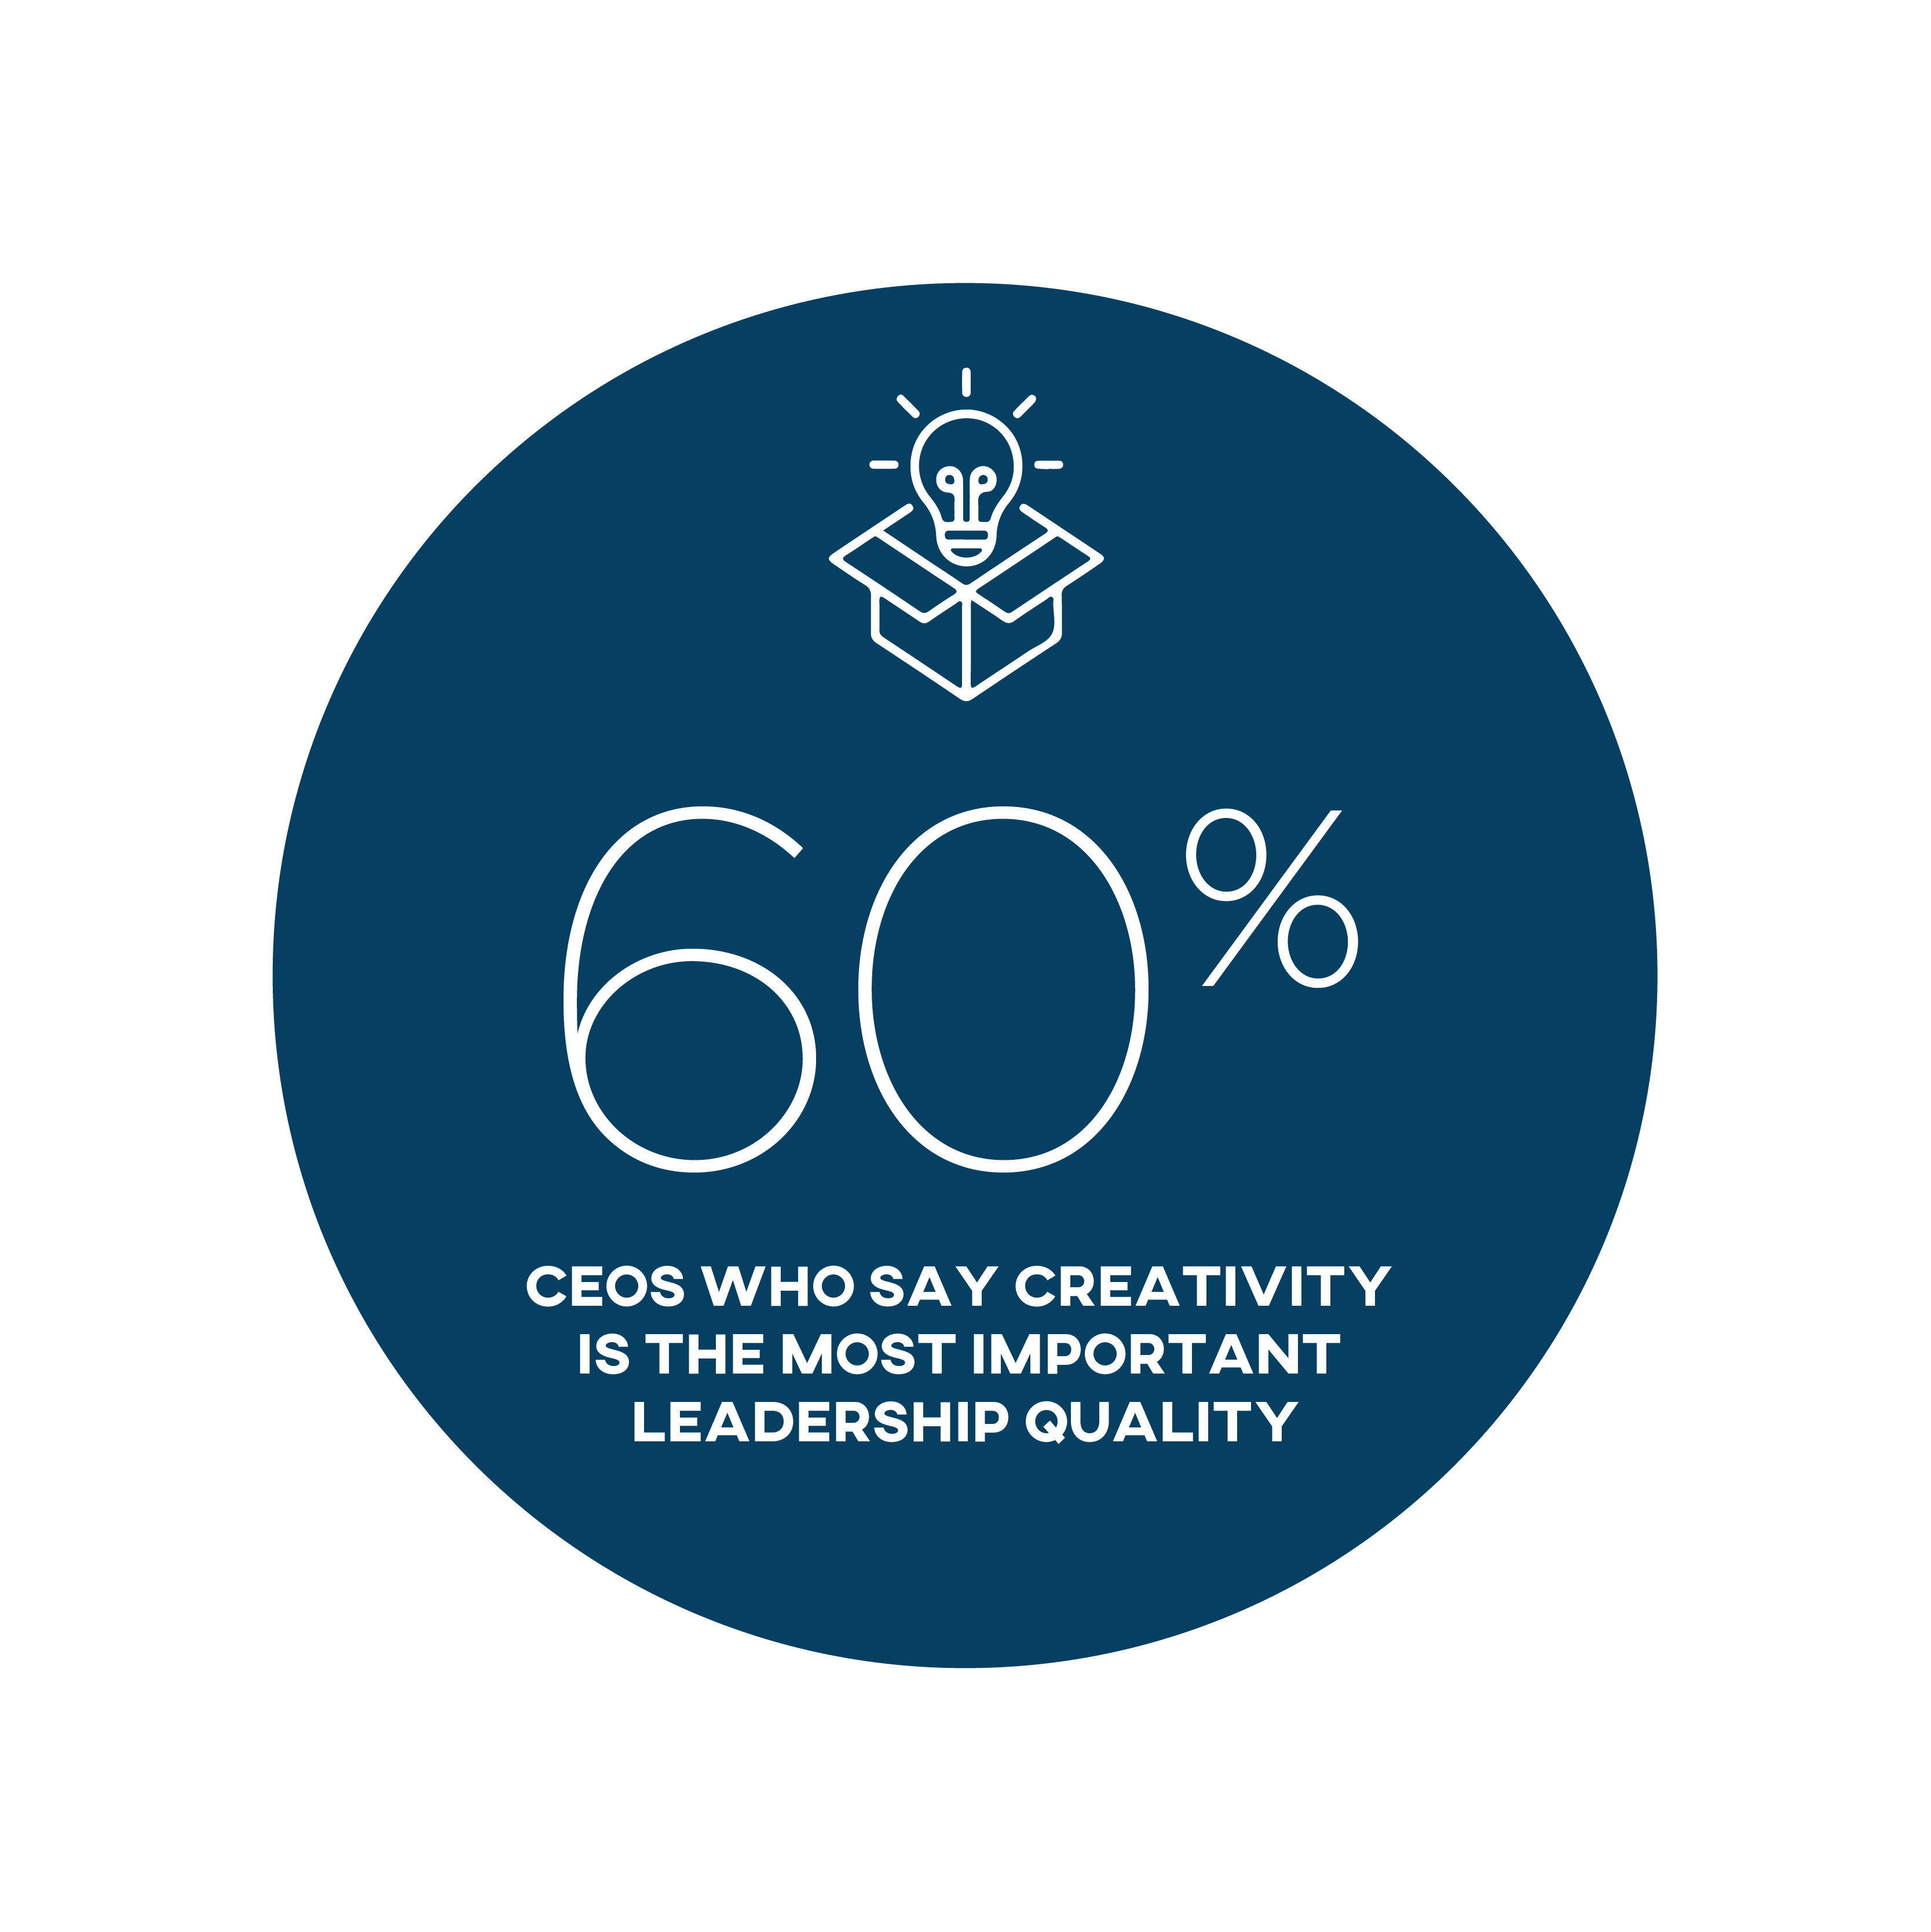 60% CEOs who say creativity is the most important leadership quality